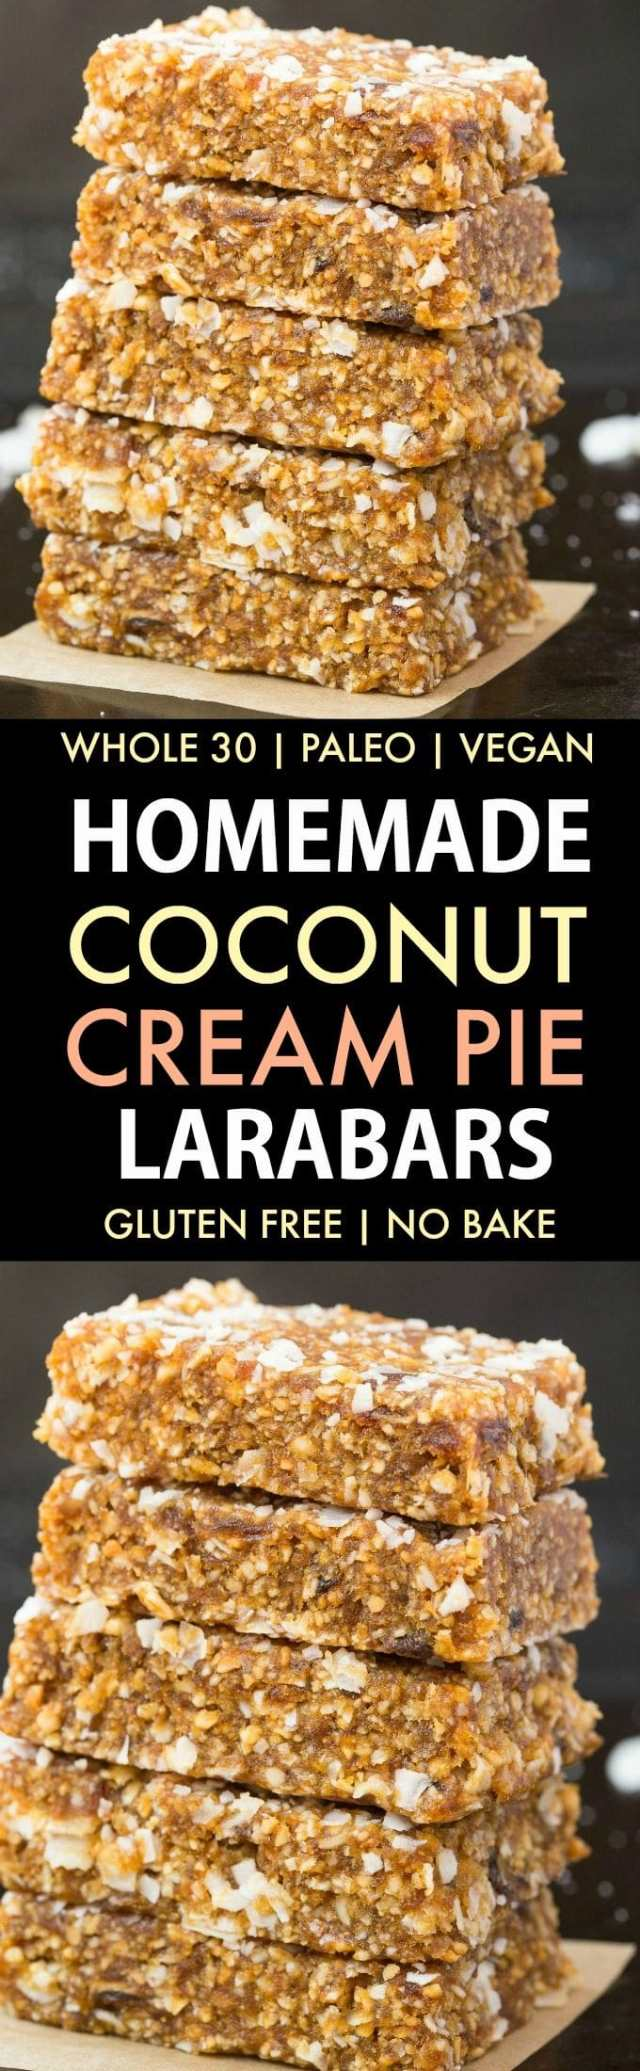 How to make whole30 Homemade Coconut Cream Pie Larabars